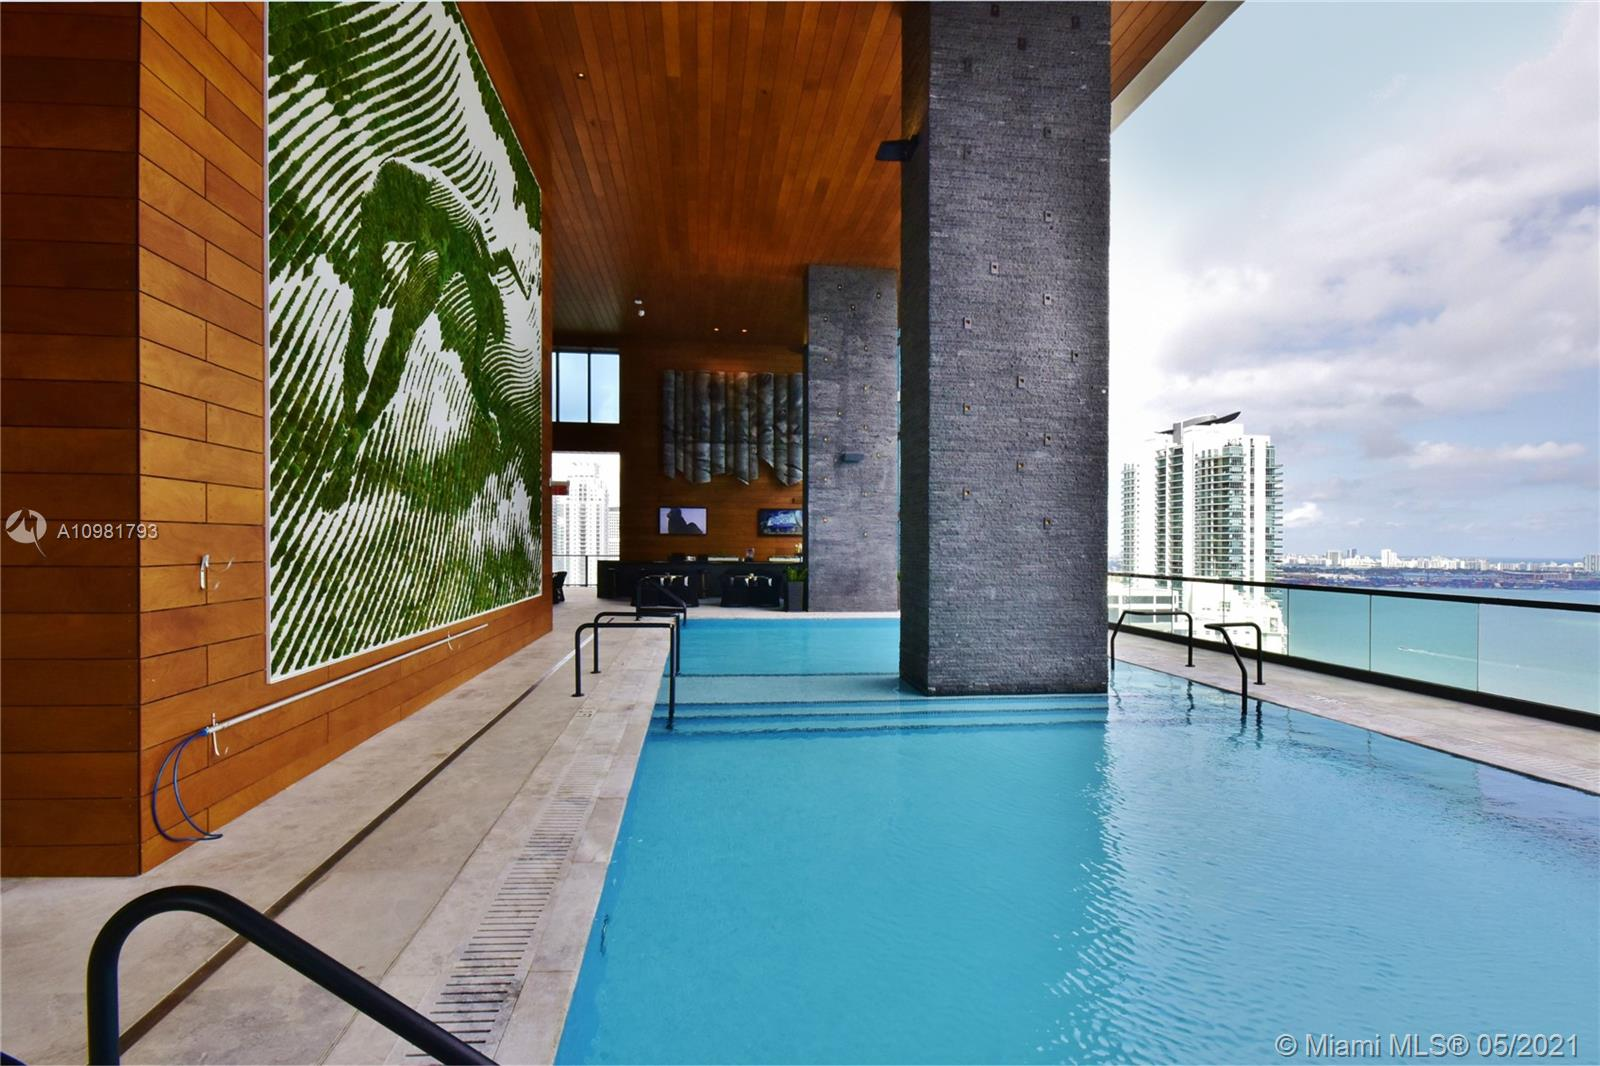 Investor welcome!! Gorgeous  1Bed/1.5Baths Corner residence at Echo Brickell, a boutique residential high-rise in the Heart OF Brickell . Spectacular views.  Modern design . balcony with summer kitchen . marble flooring countertops and top-of the line SubZero, Wolf and Bosch appliances APPLE® Home Technology, robotic parking system, Infinity-edge pool, state-of-the-art gym and spa deck with panoramic views of Biscayne Bay and Downtown Miami. 24/7 concierge, valet, pet walker, car service and more